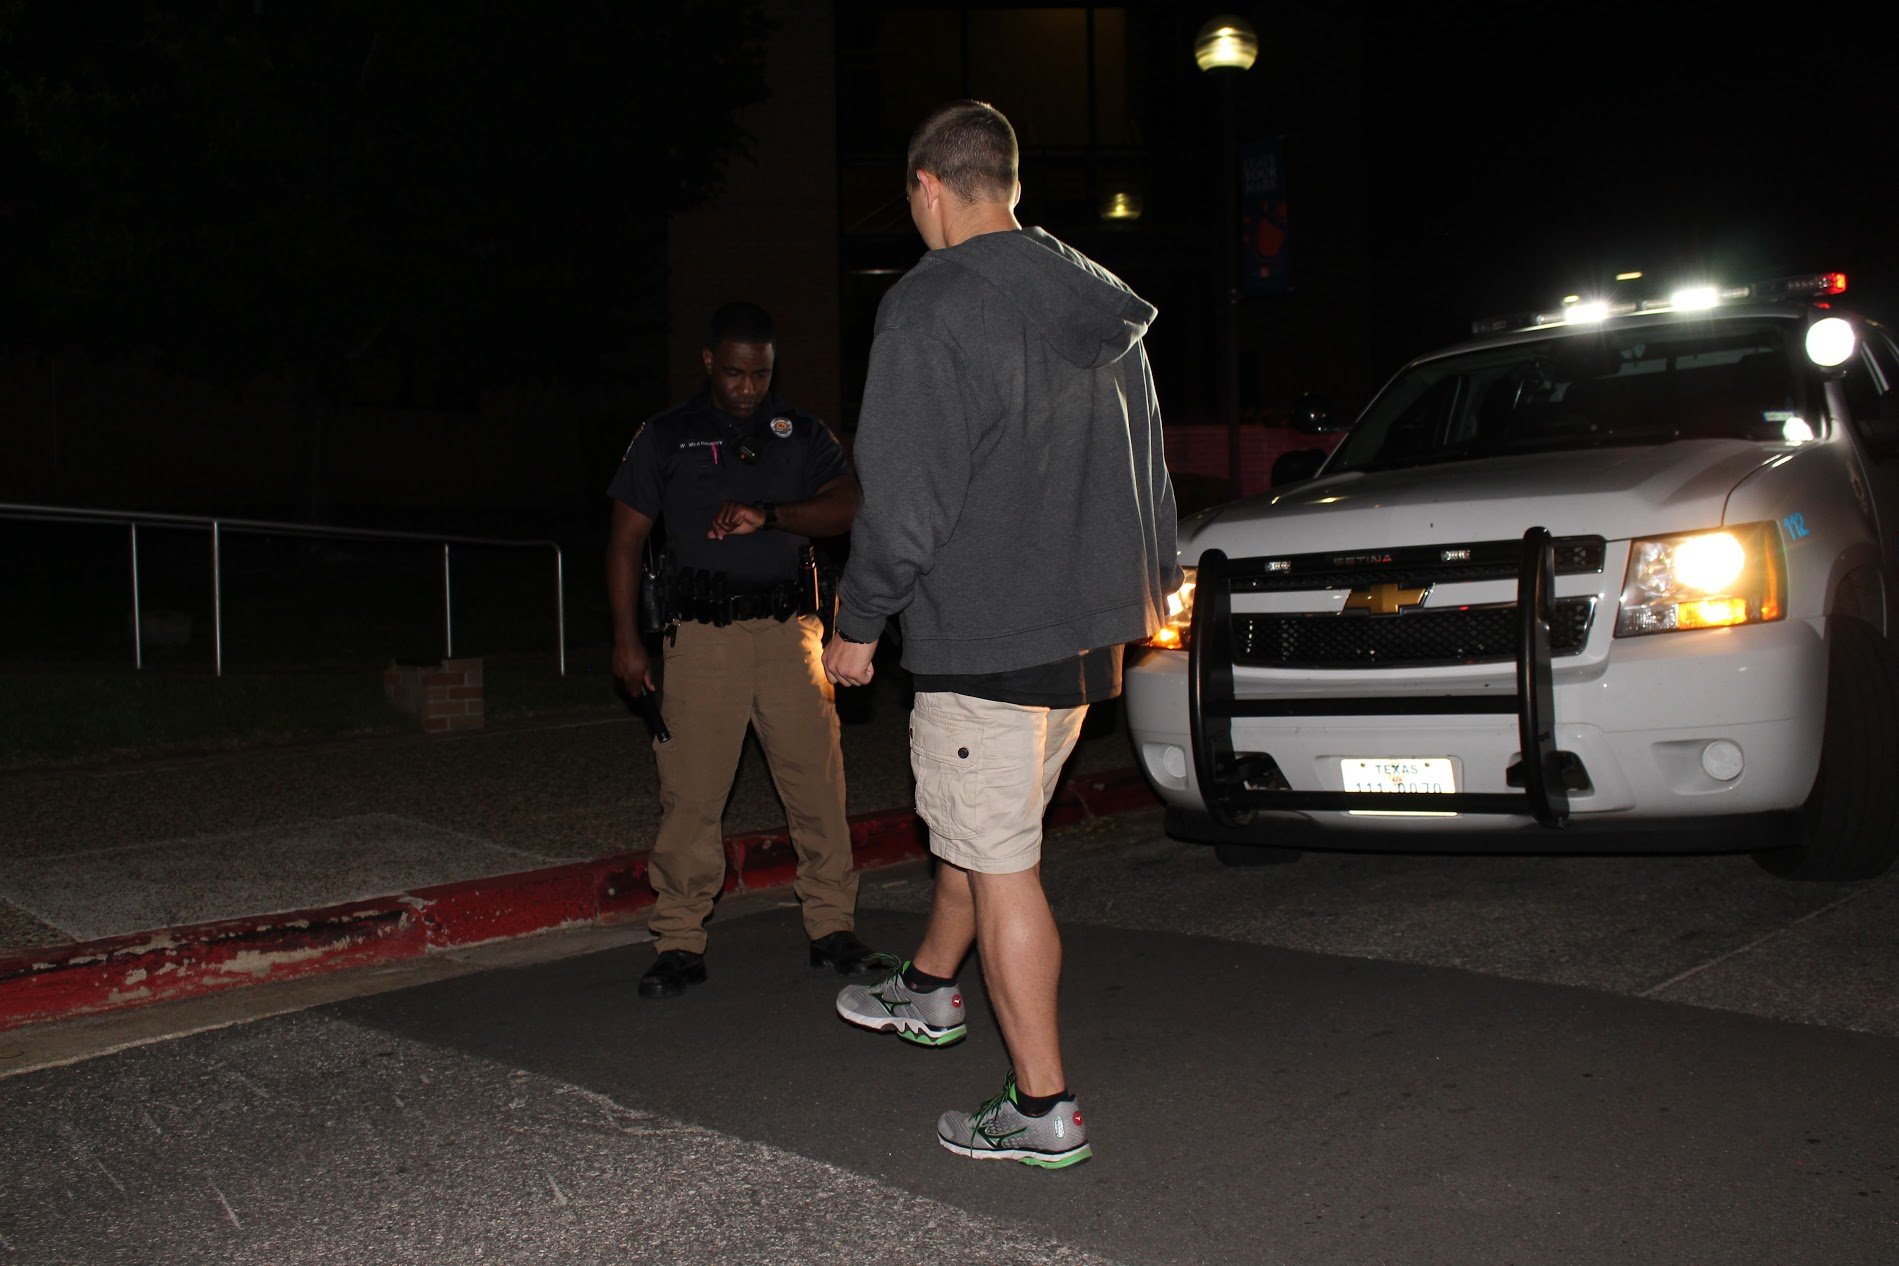 Officer conducts DWI test at night